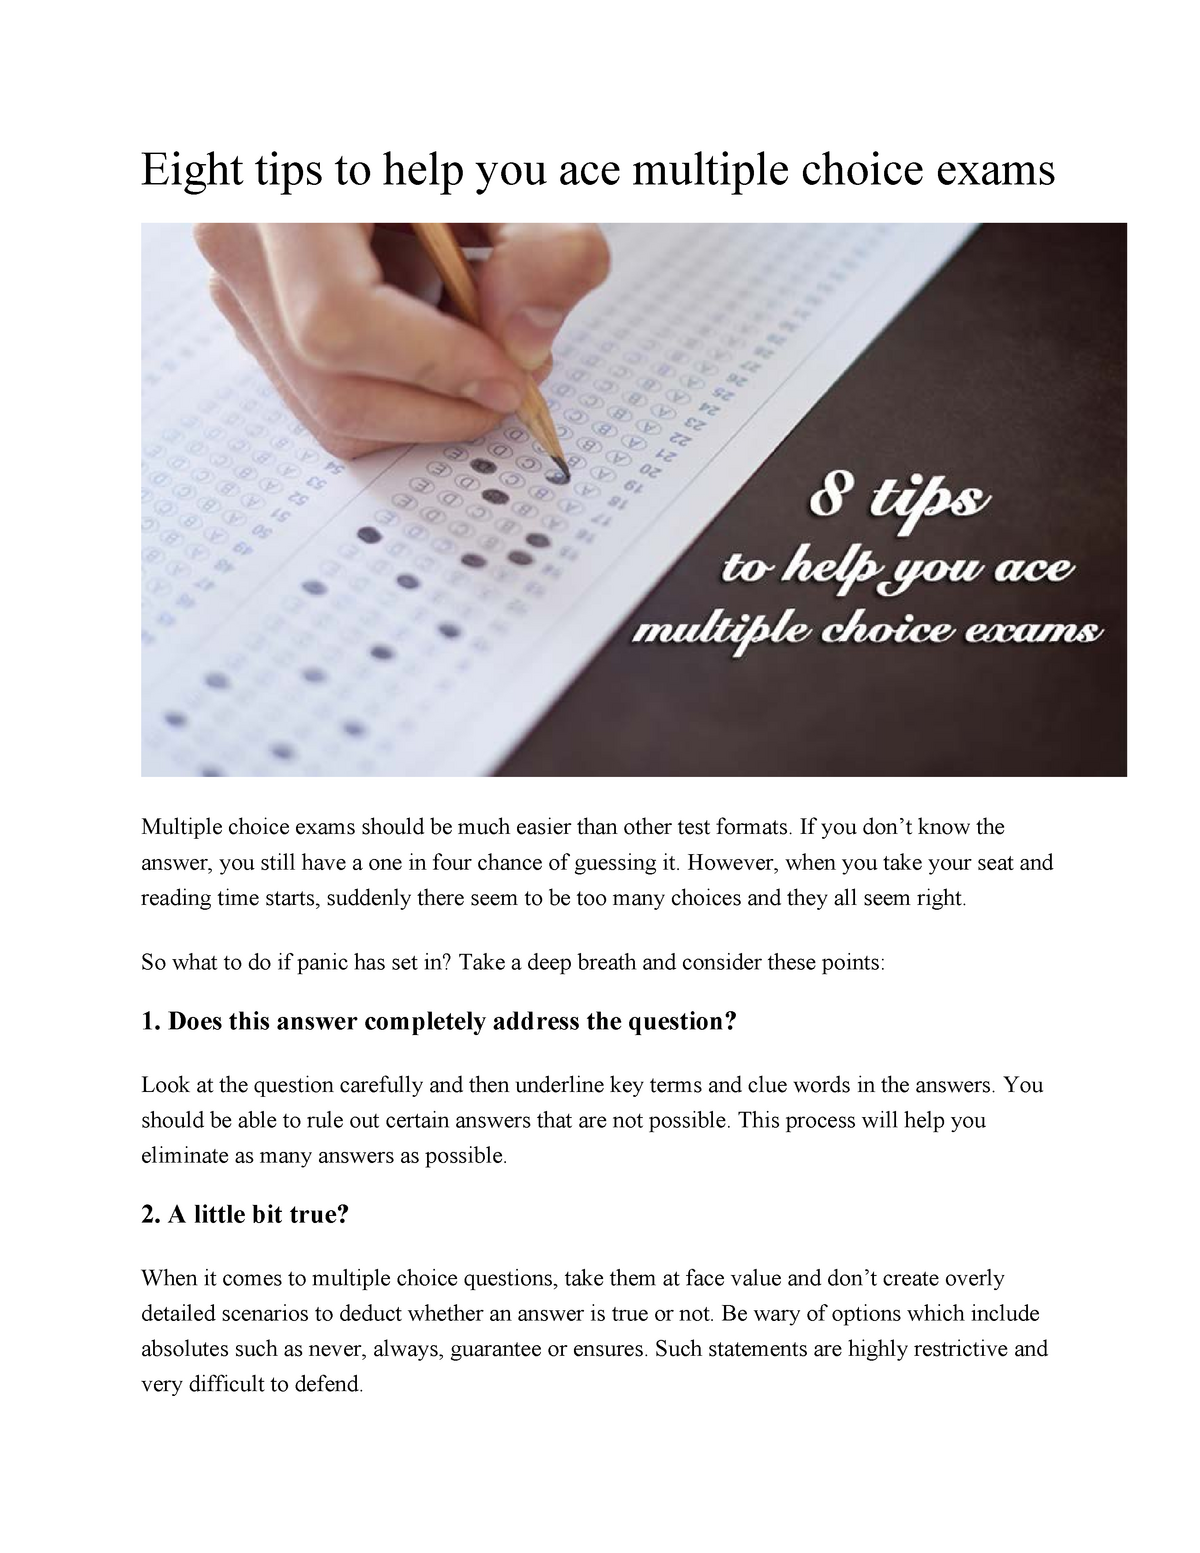 Eight tips to help you ace multiple choice exams